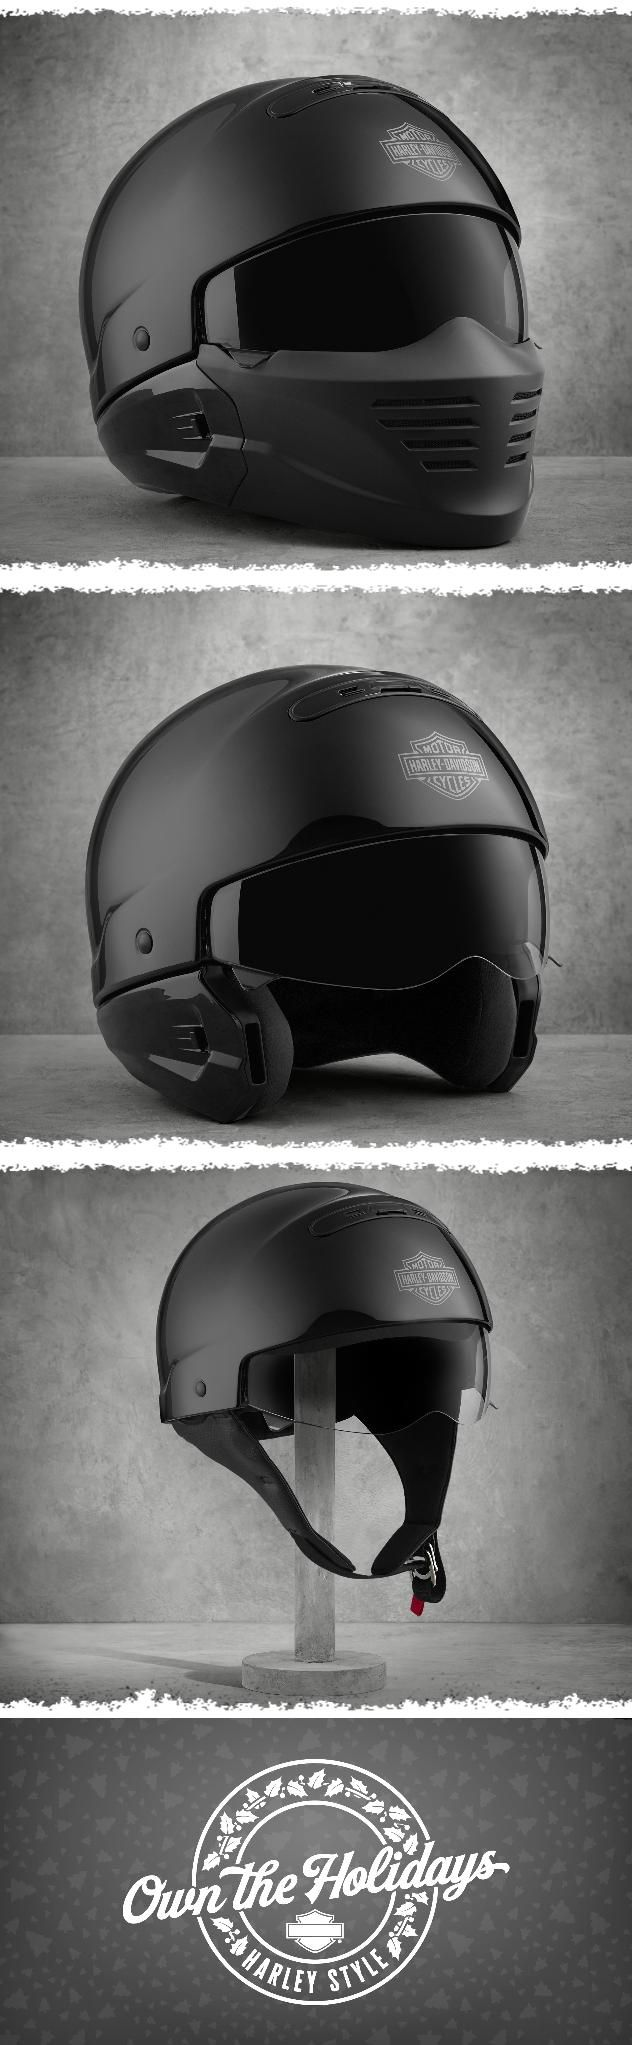 Bell custom 500 gloss black vintage low profile helmet chopper harley - 3 Innovative Options To Wear For Added Comfort Harley Davidson Pilot Ii 3